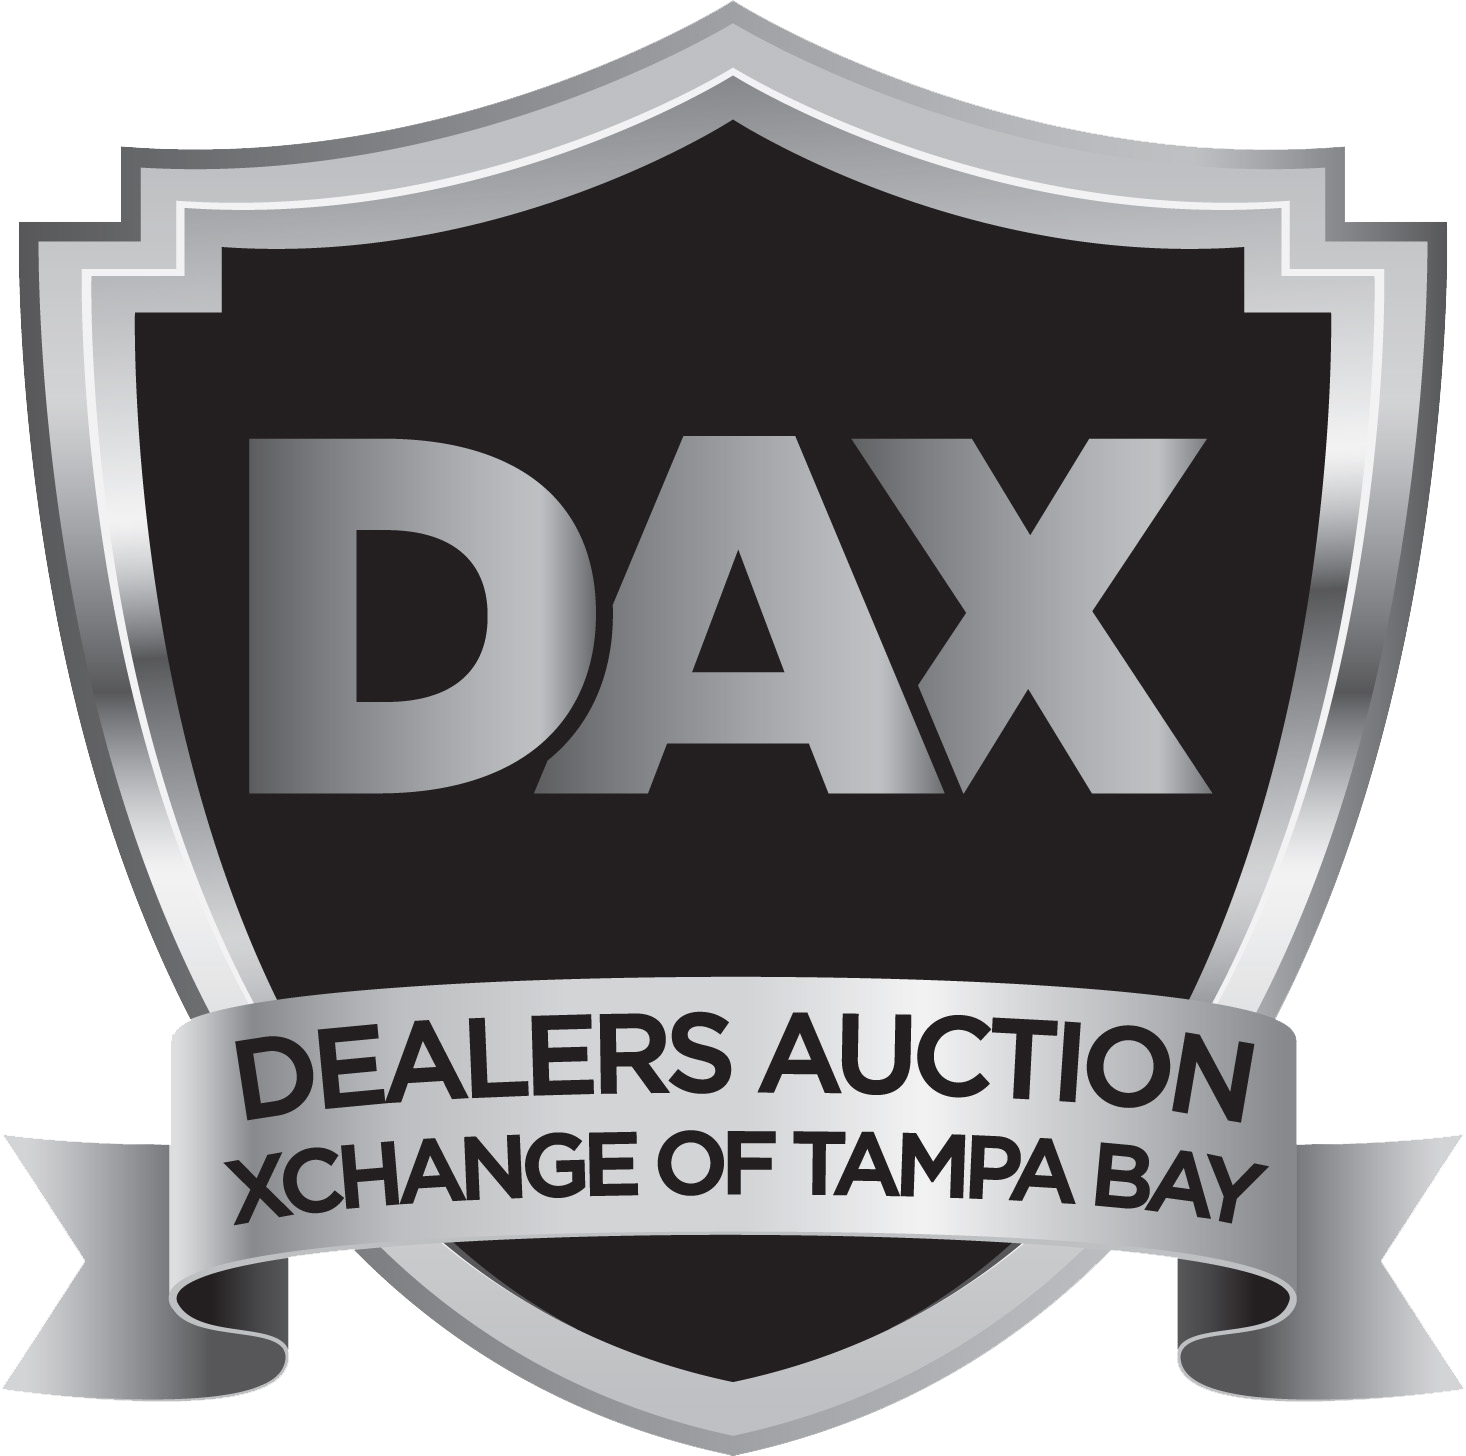 Dax Dealers Auction Xchange